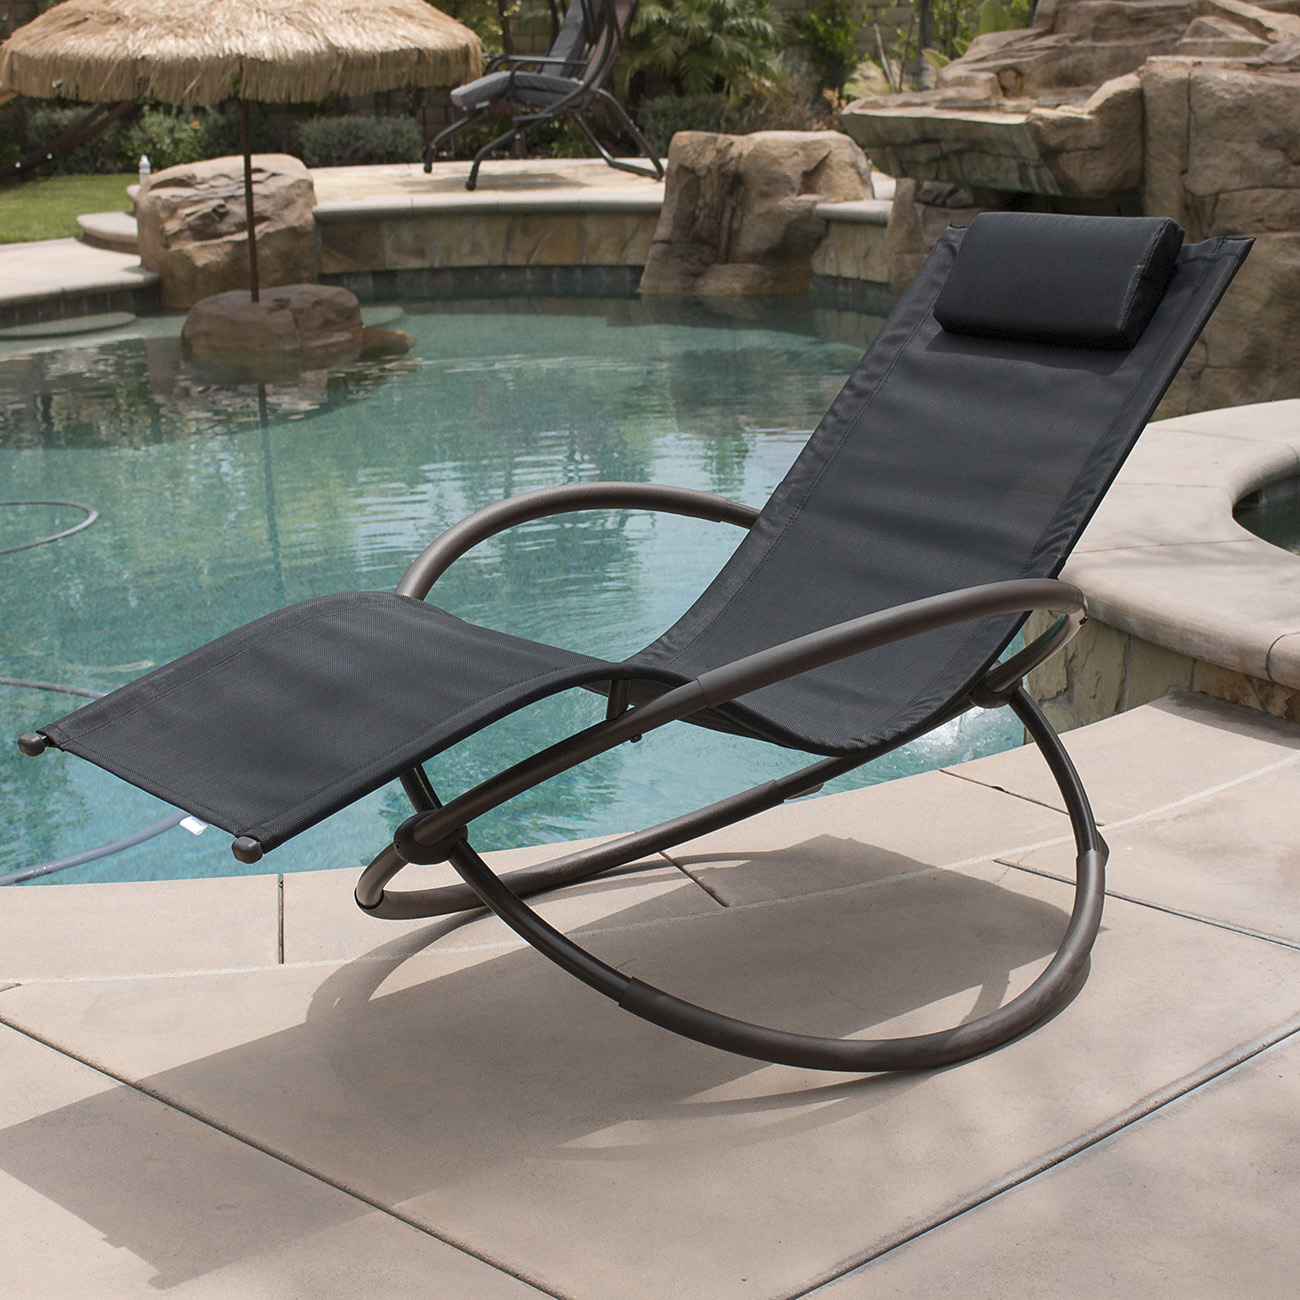 zero gravity pool chairs rustic wooden uk 7 color orbital anti lounge chair beach